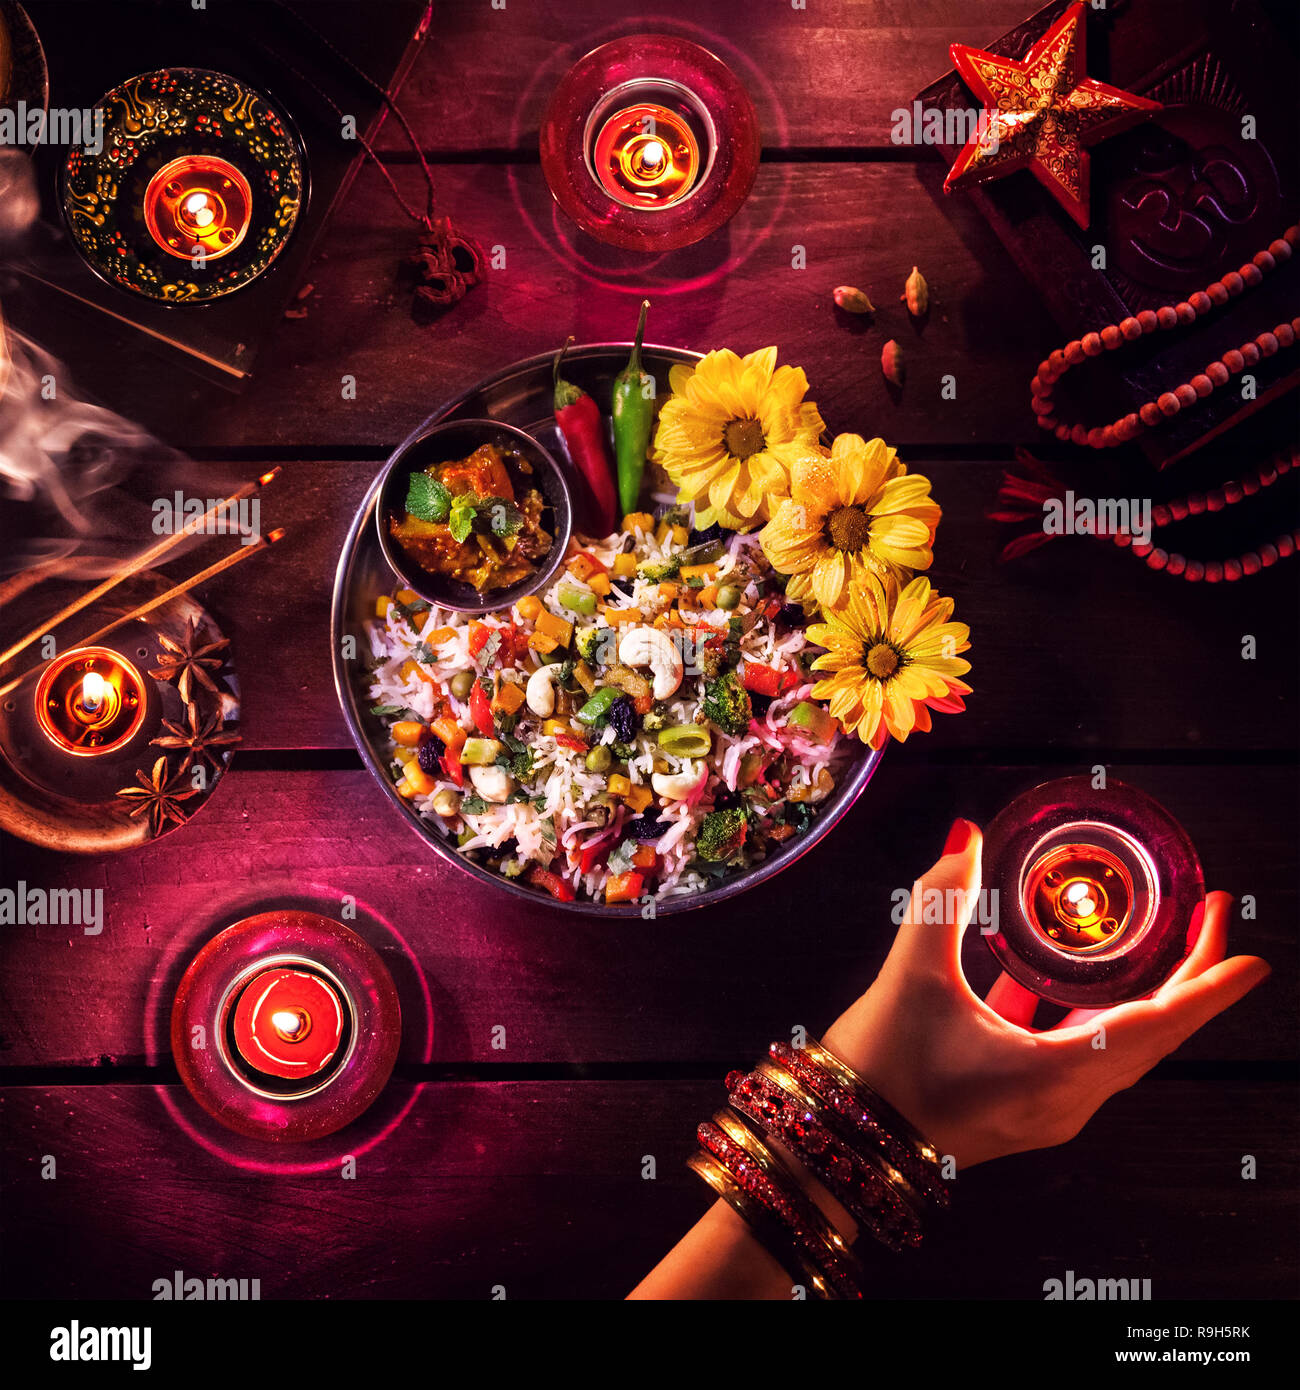 Vegetarian biryani, candles, incense and religious symbols at Diwali celebration on the table - Stock Image